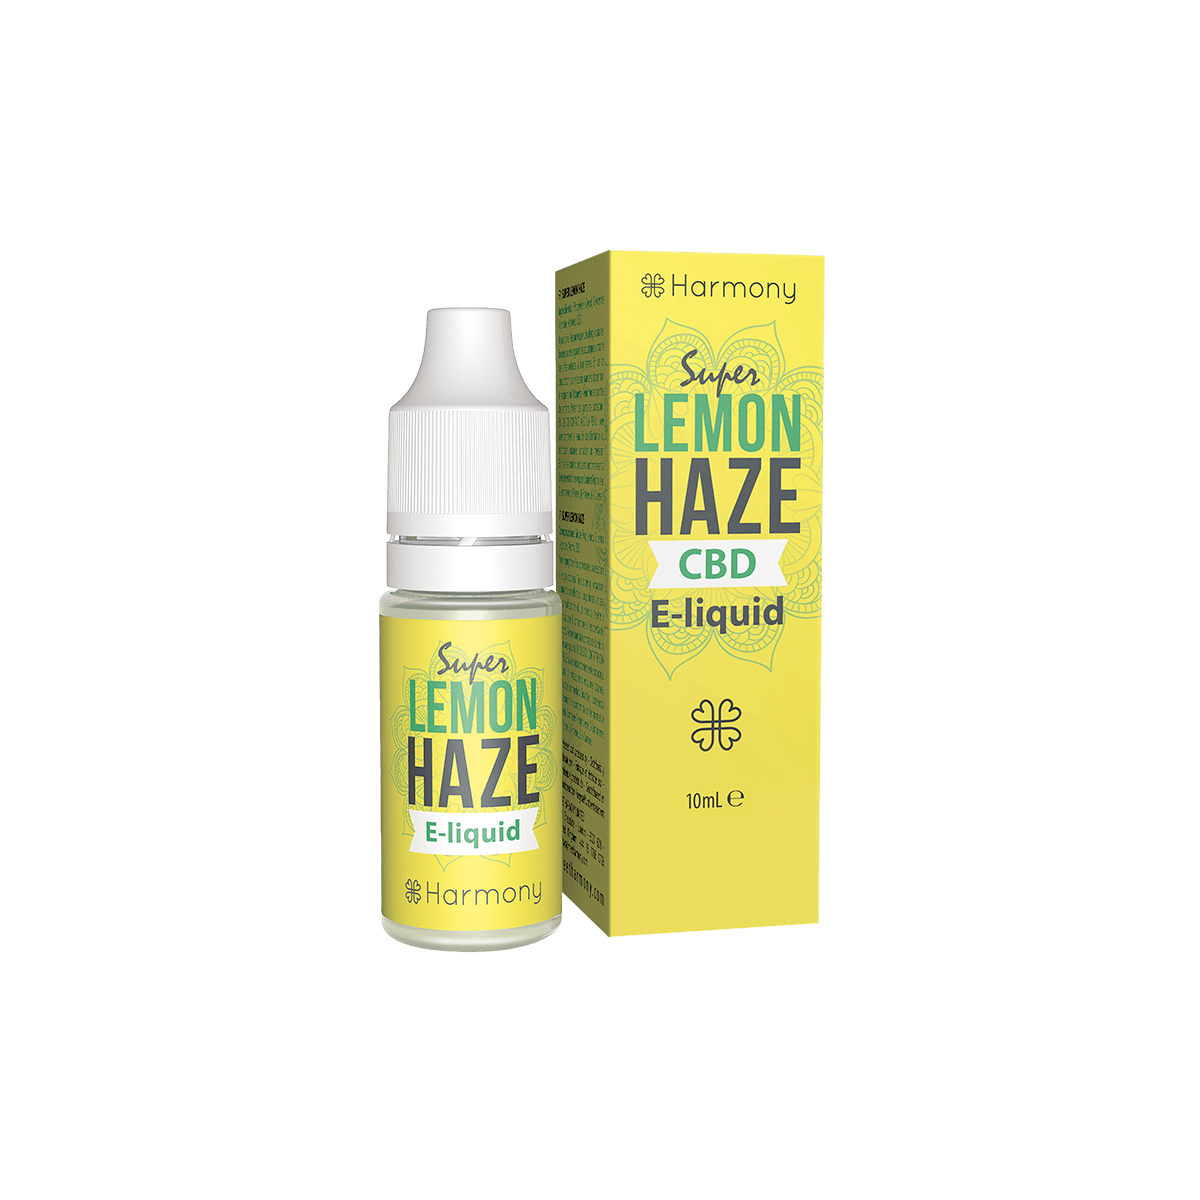 CBD Liquid | HARMONY Super Lemon Haze | Menge 10 ml - 30 mg